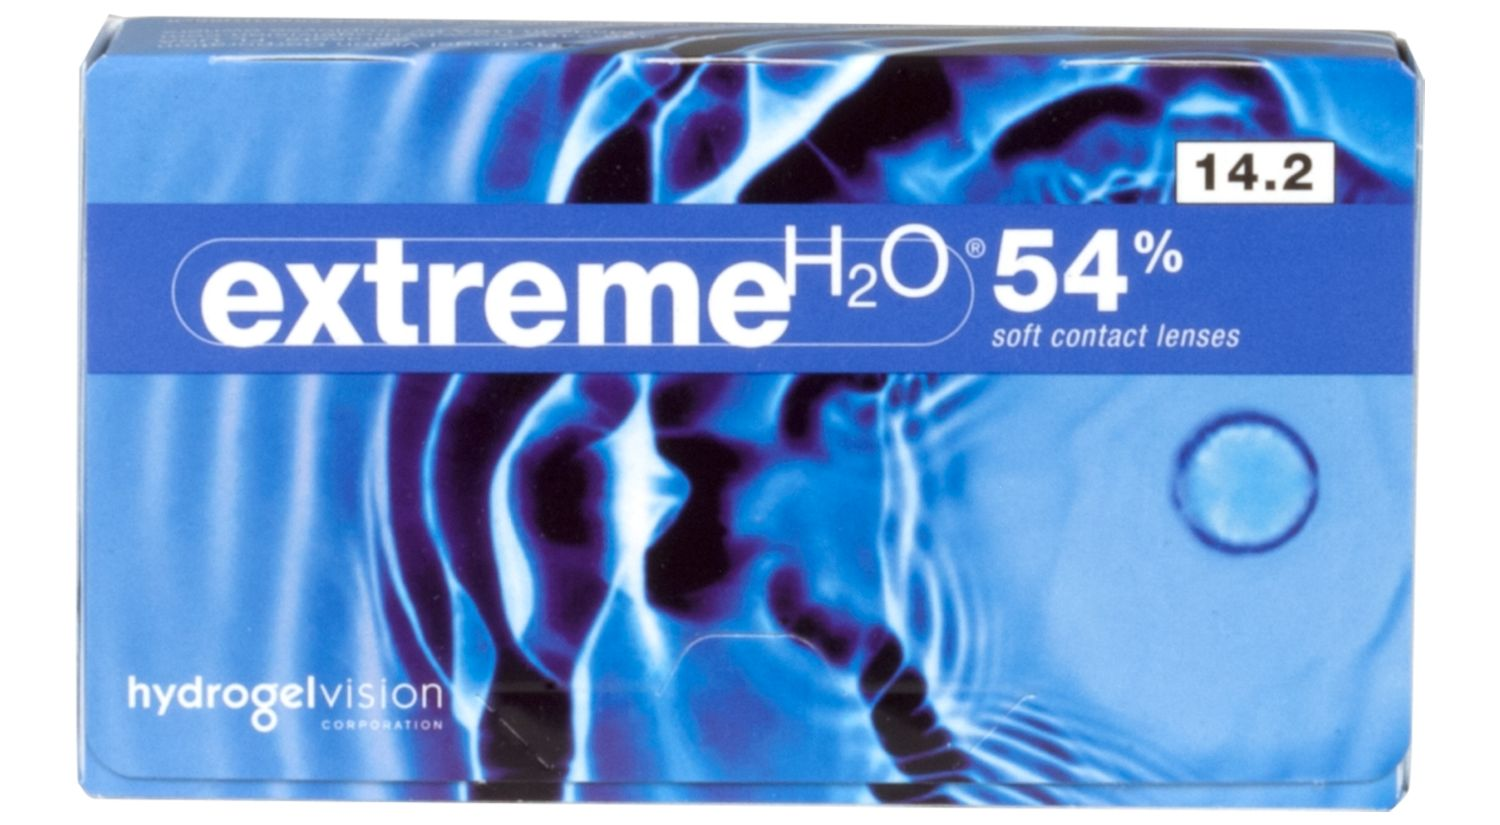 Extreme H2O 54% 14.2 12 pack